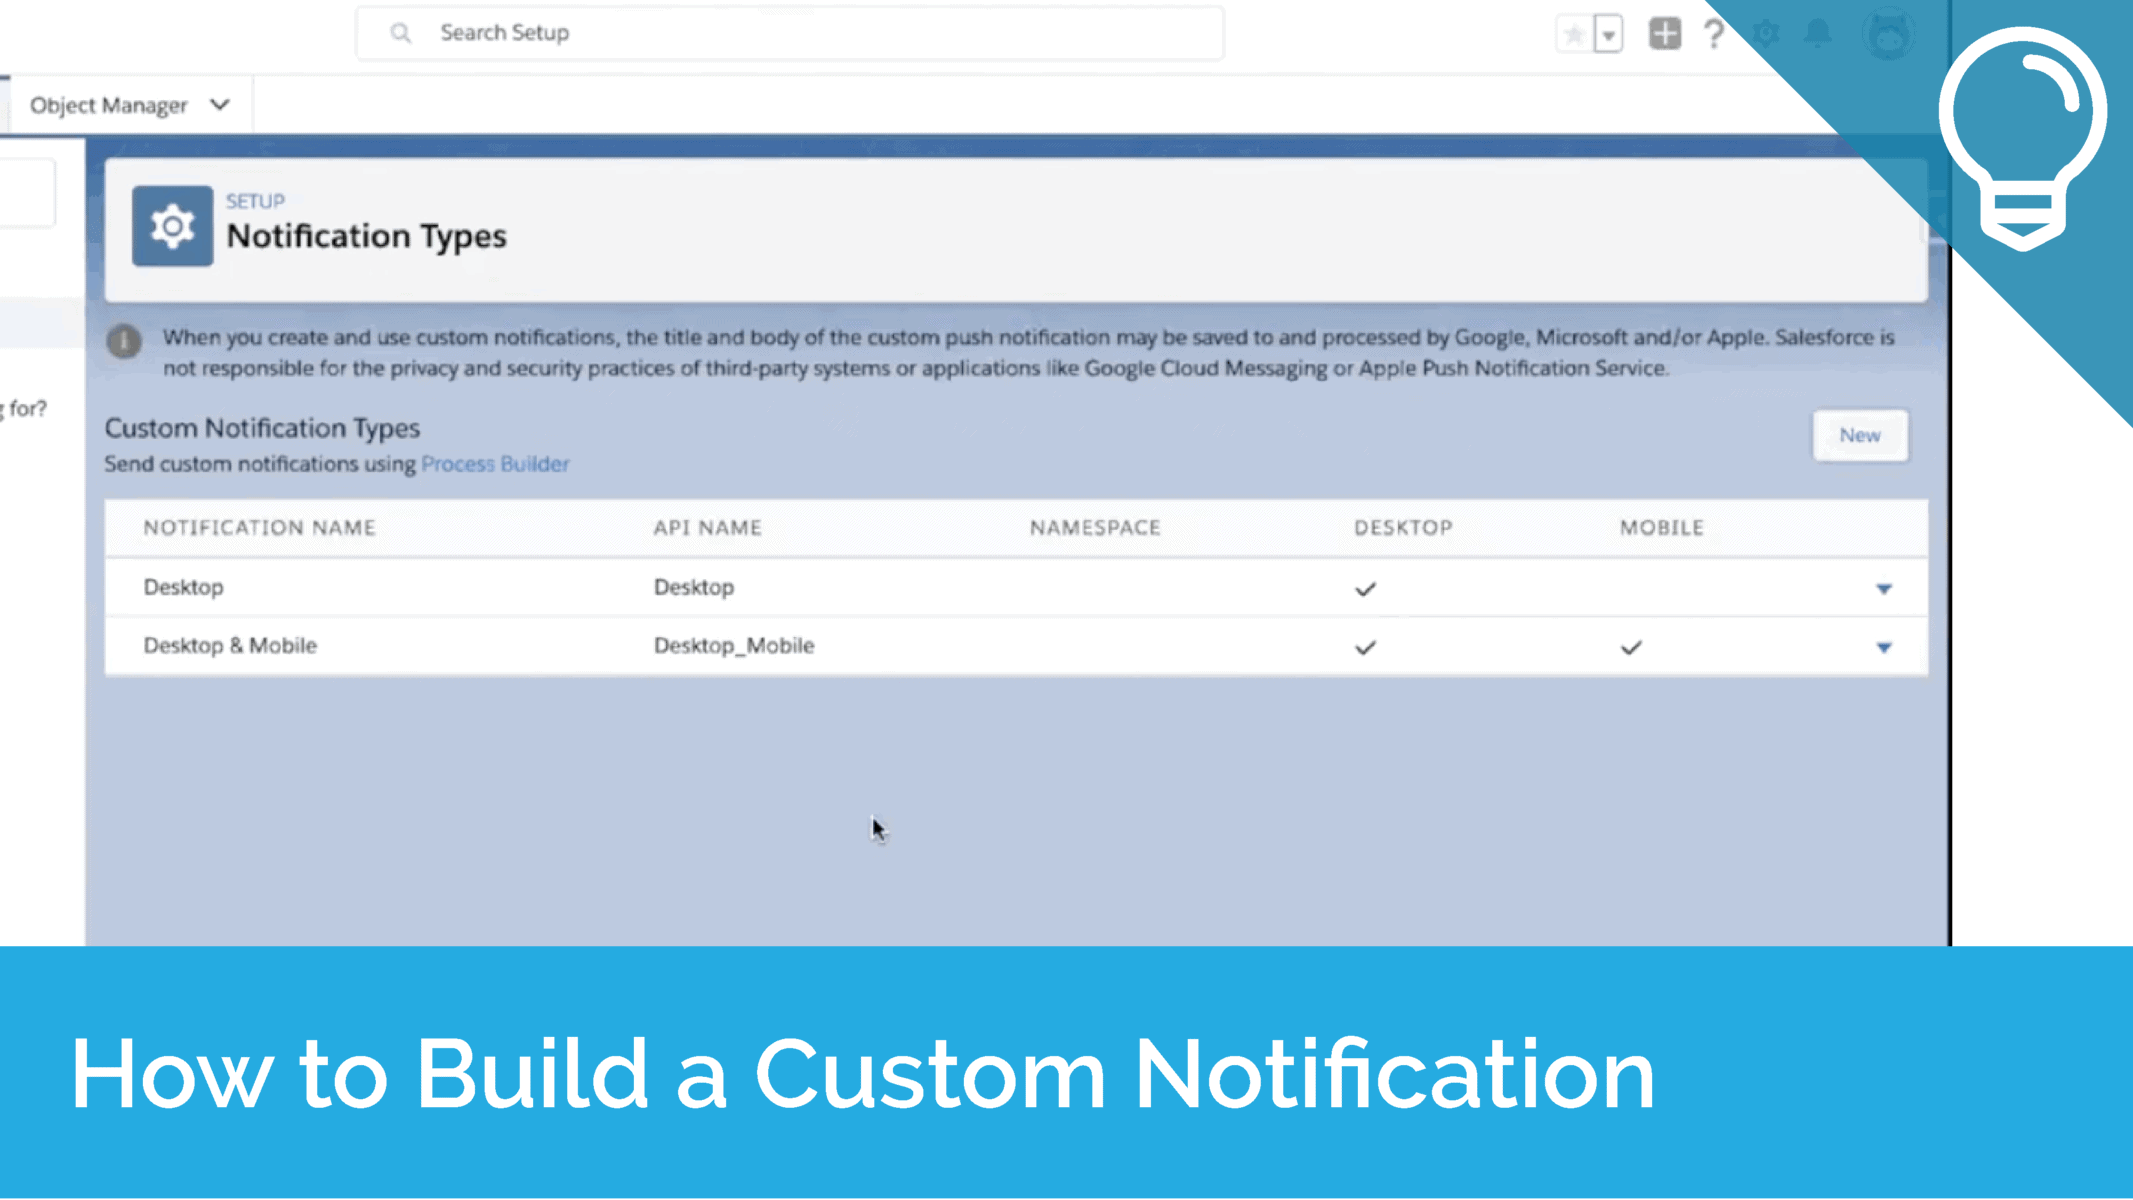 How to Build a Custom Notification